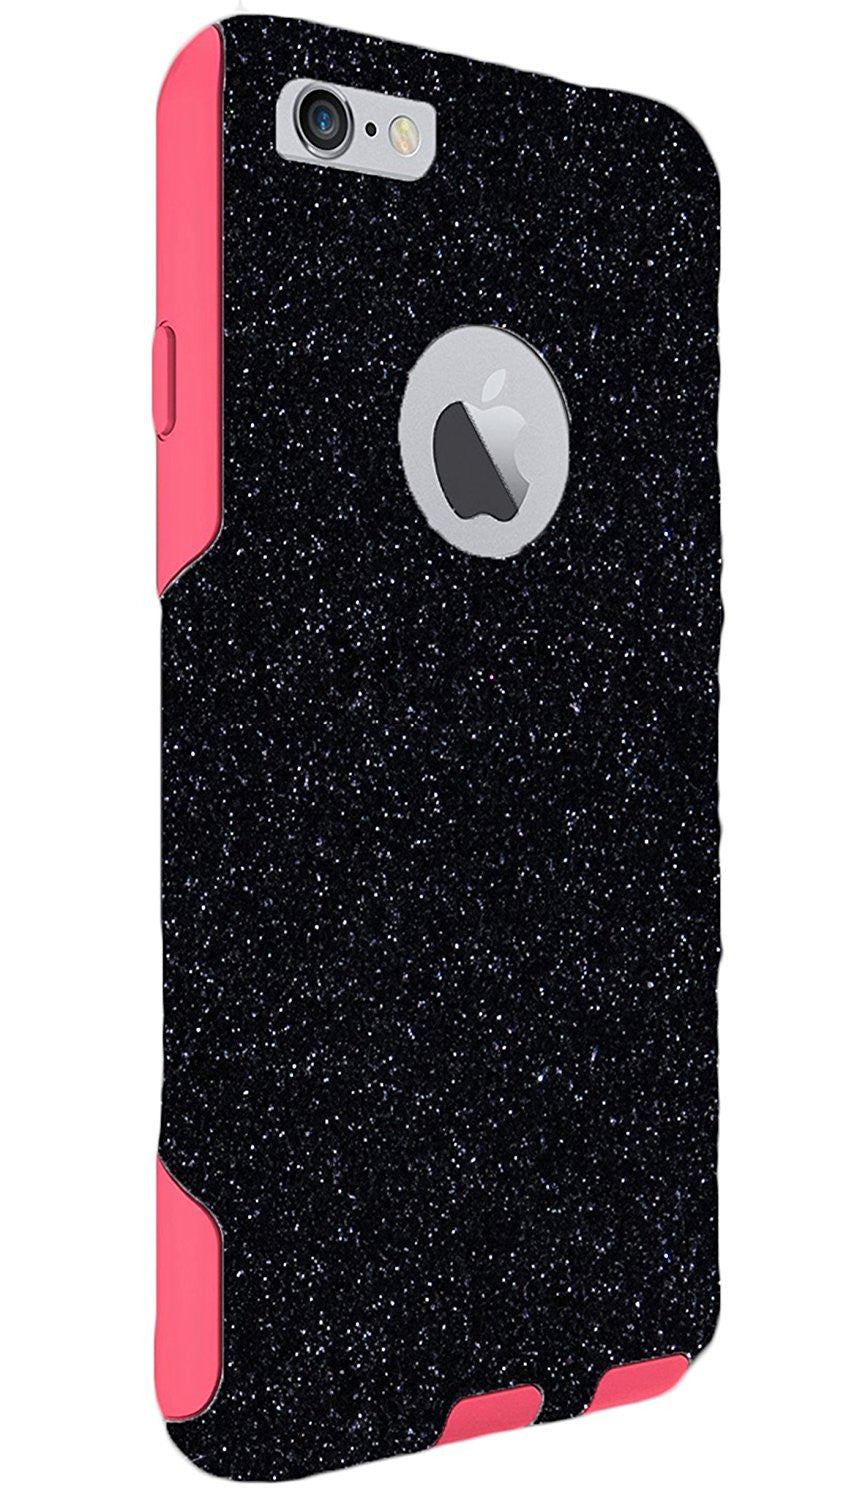 best sneakers 360ac 467b3 OtterBox iPhone 6 Plus Case - OtterBox Commuter Series Custom Glitter Case  for iPhone 6 Plus, Retail Packaging - Pink Case (5.5 inch)